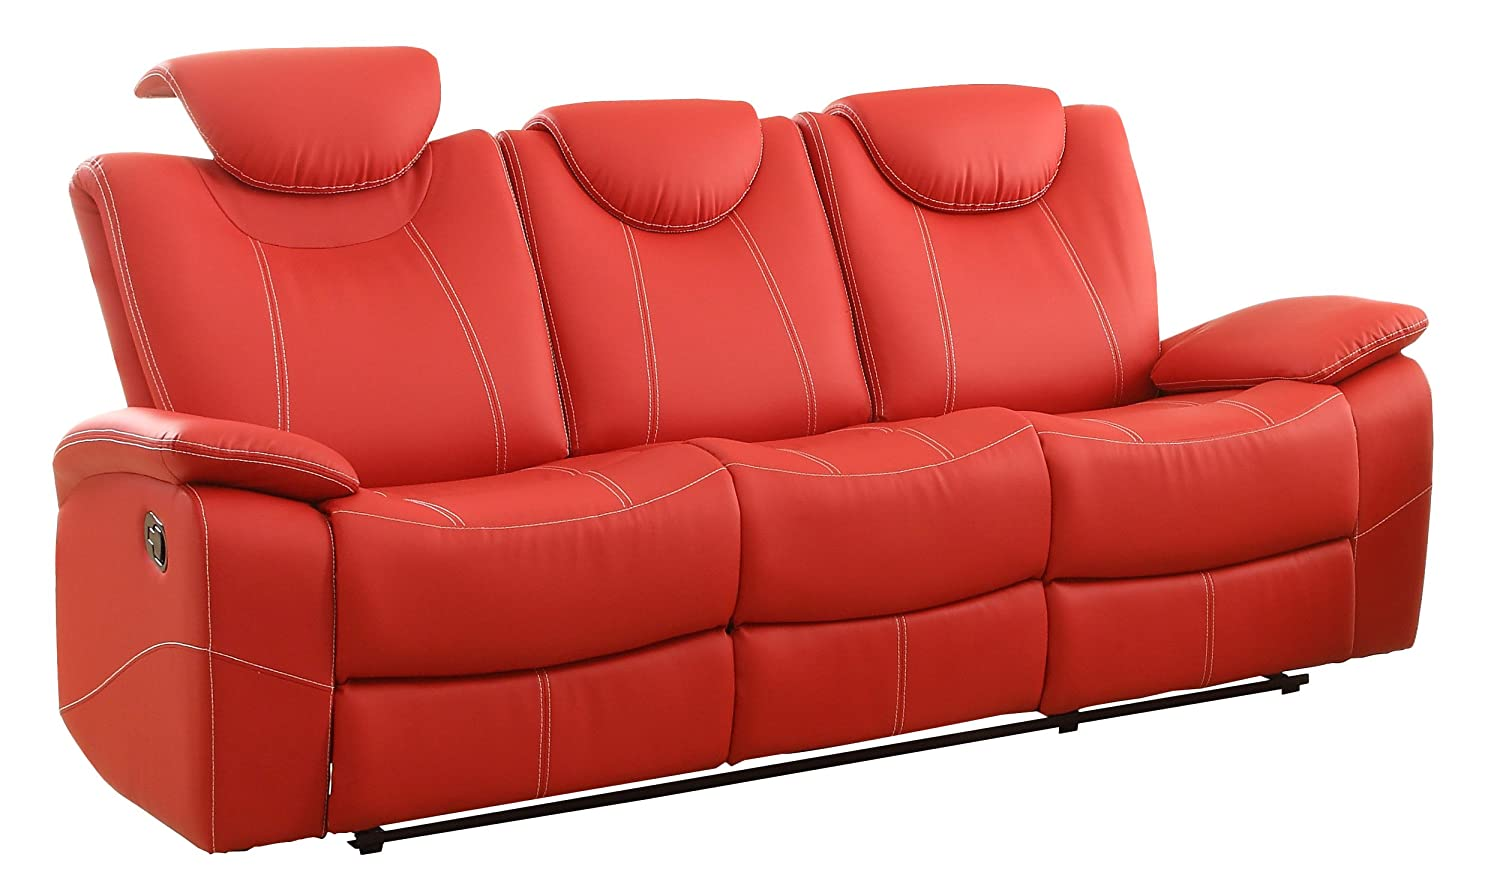 Reclining Red Sofas You\'ll Love in 2019 | Wayfair